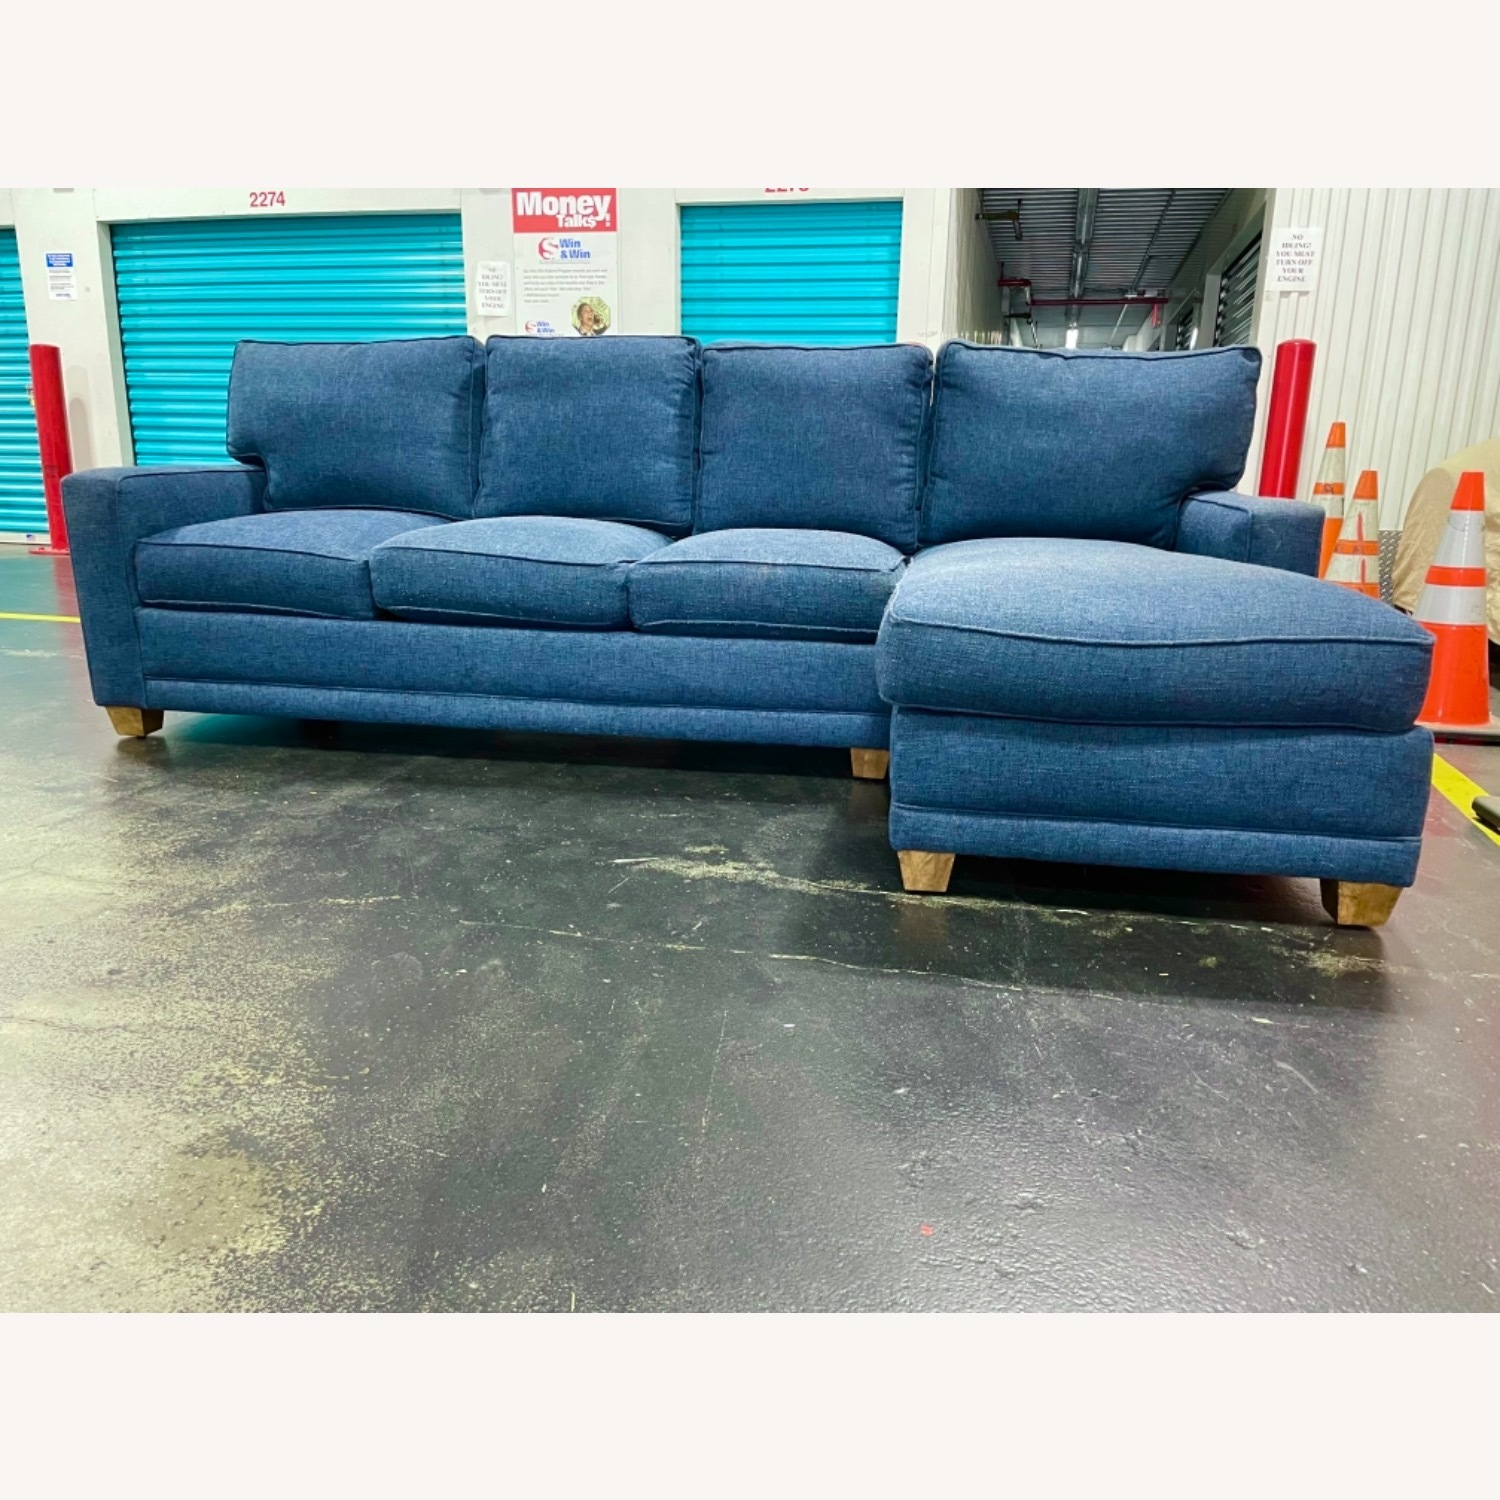 Rowe My Style 2 Piece Sectional - image-6